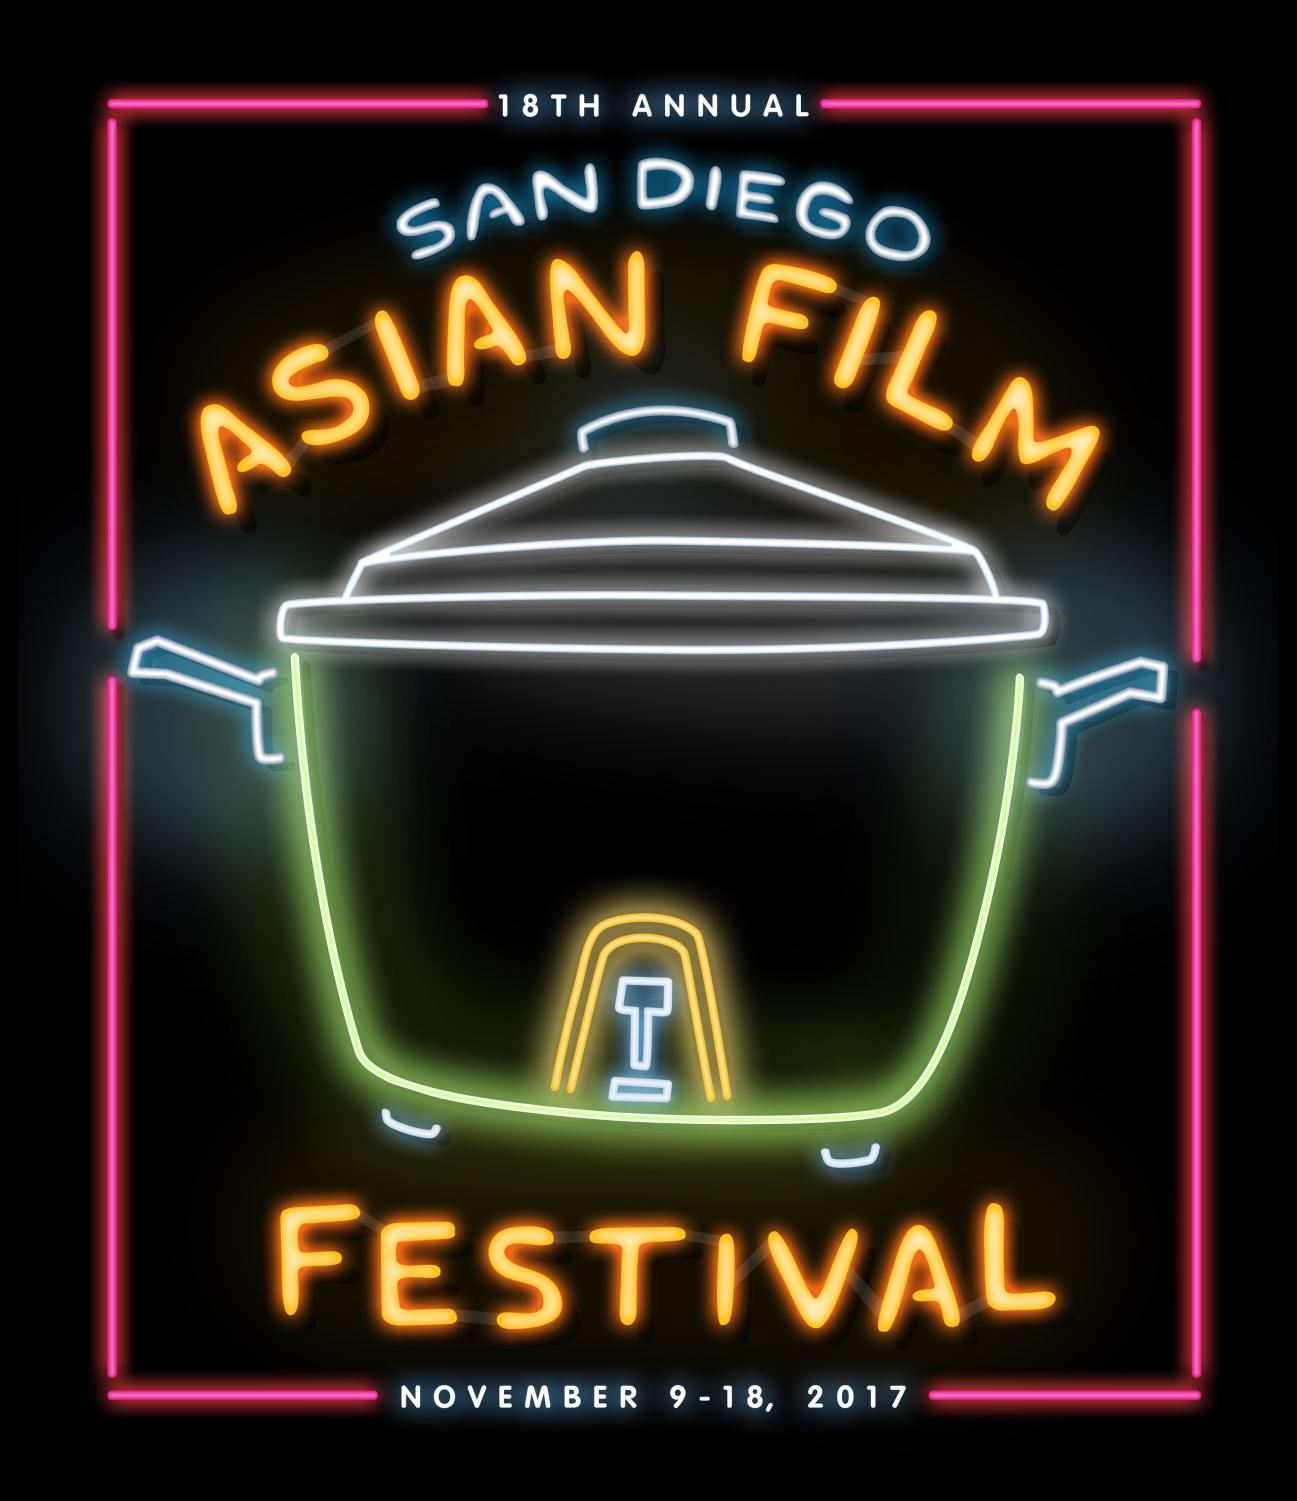 The 18th Annual San Diego Film Festival took place from Nov. 9-18